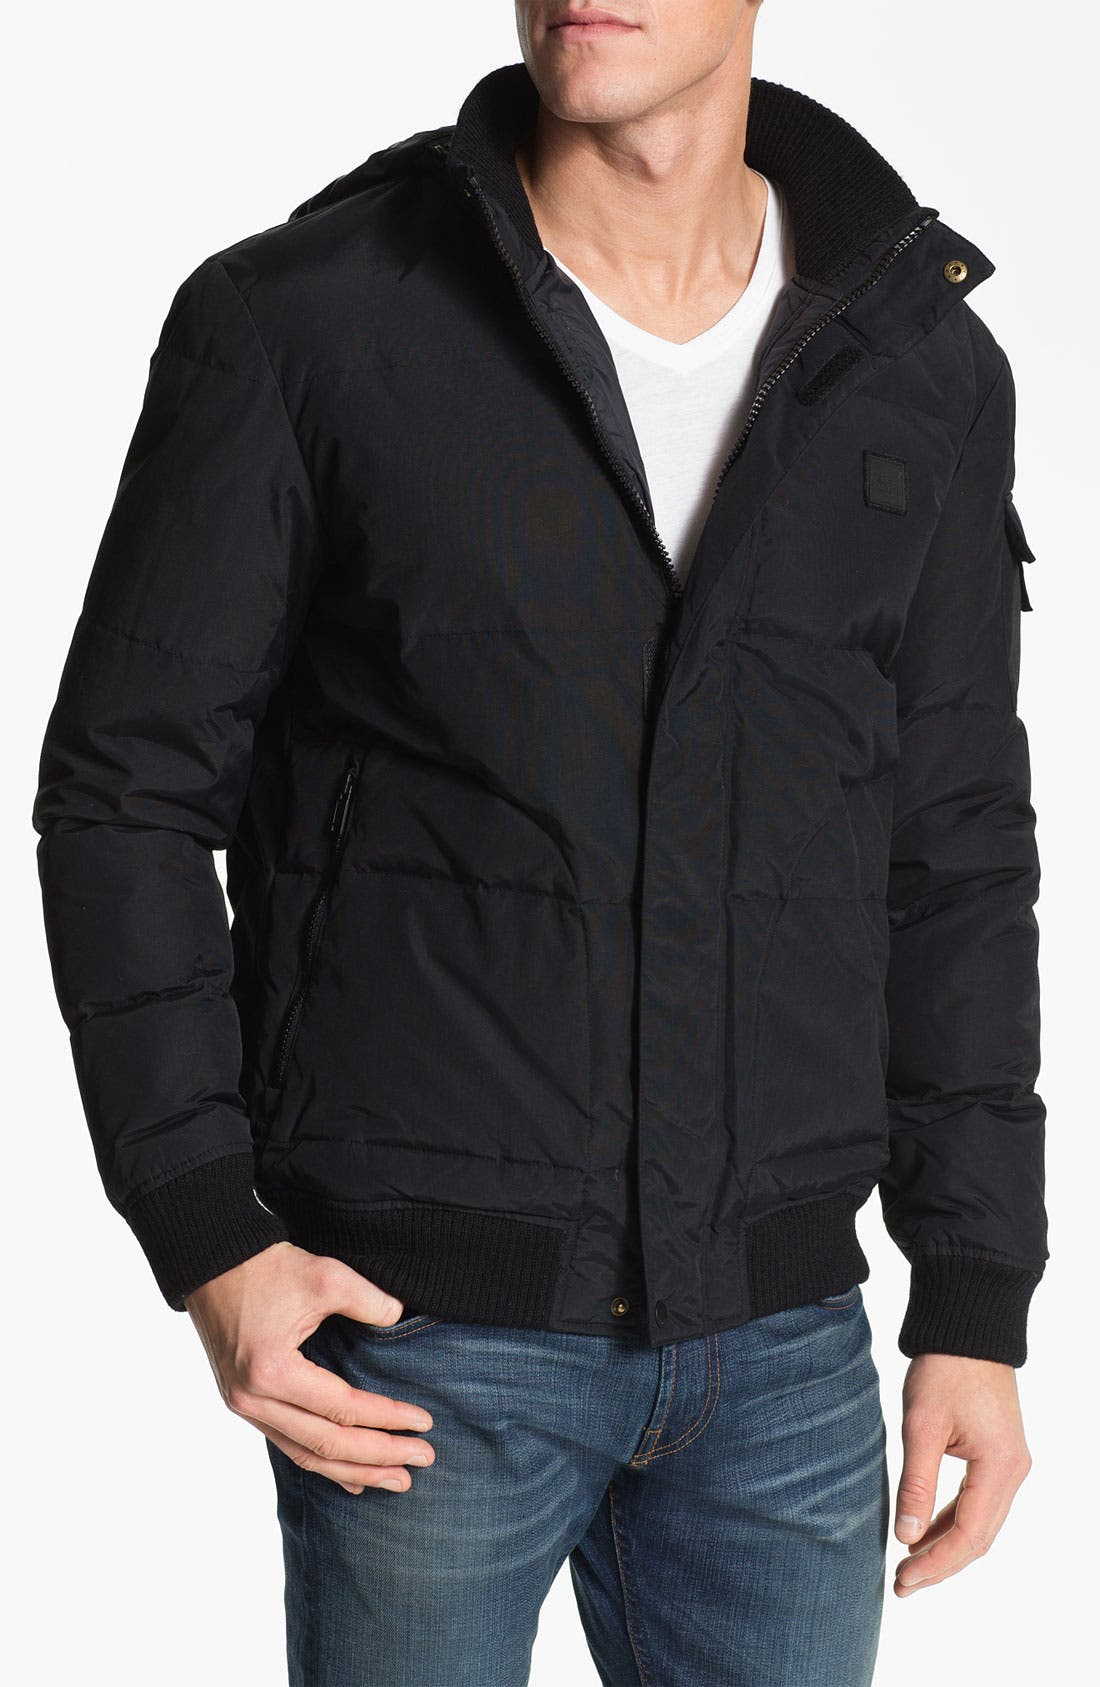 Alternate Image 1 Selected - Lacoste Quilted Bomber Jacket